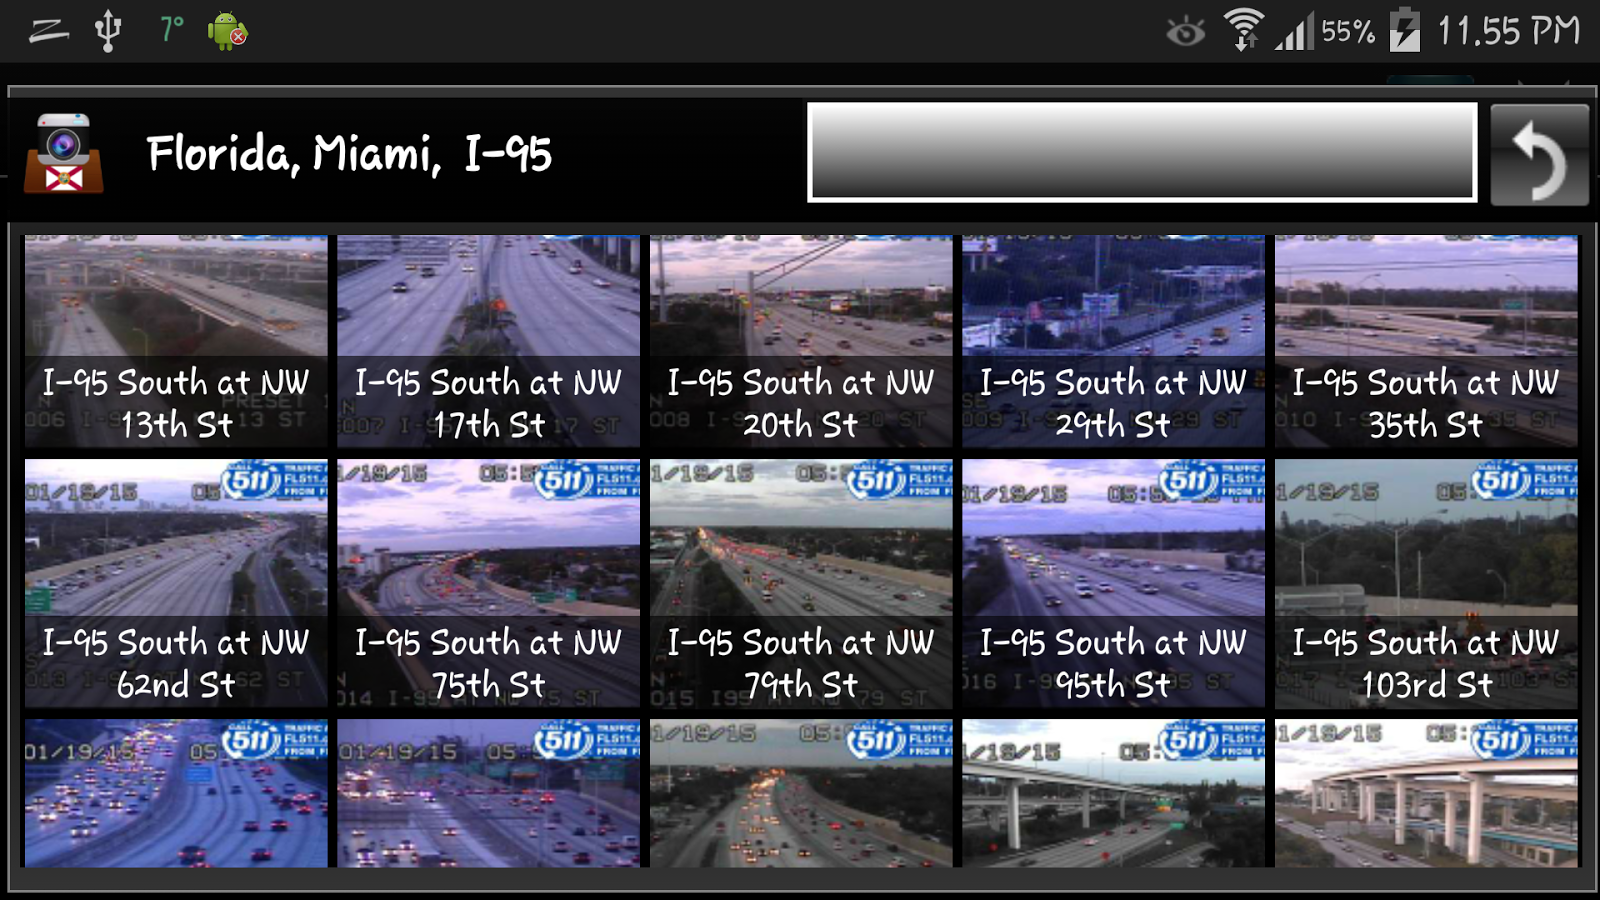 Florida Cameras - Traffic cams - Android Apps on Google Play